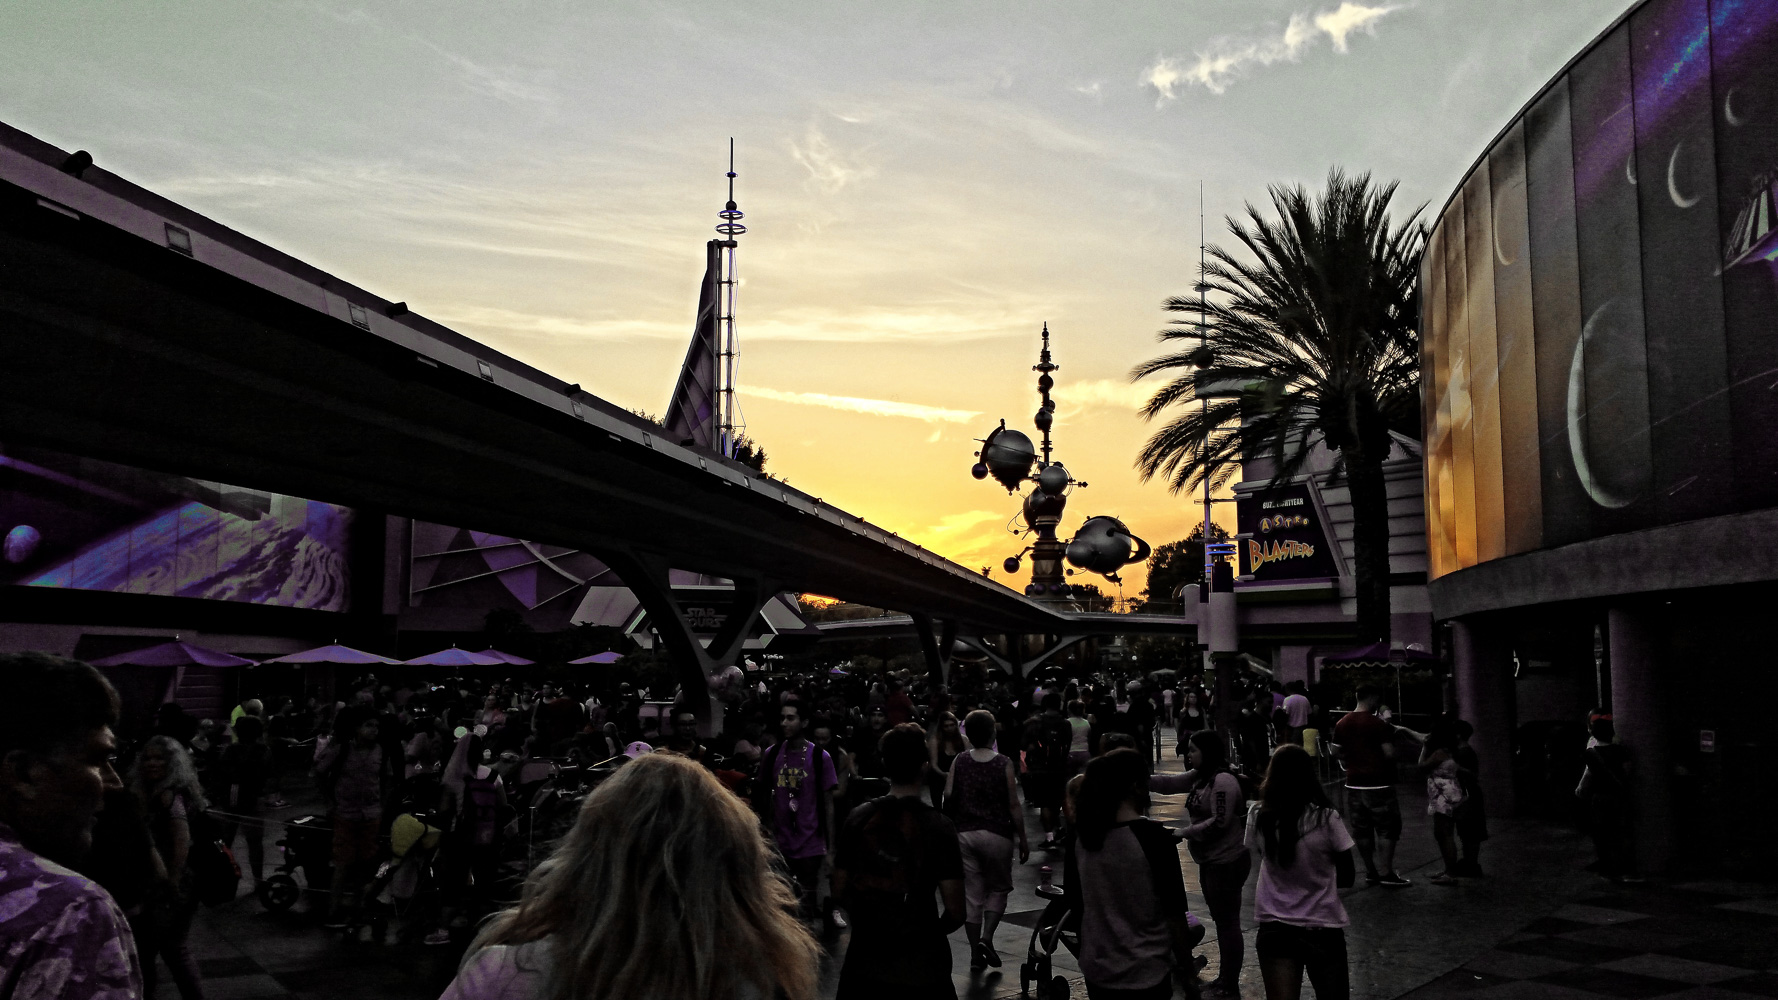 Walking through Tomorrow Land at sunset